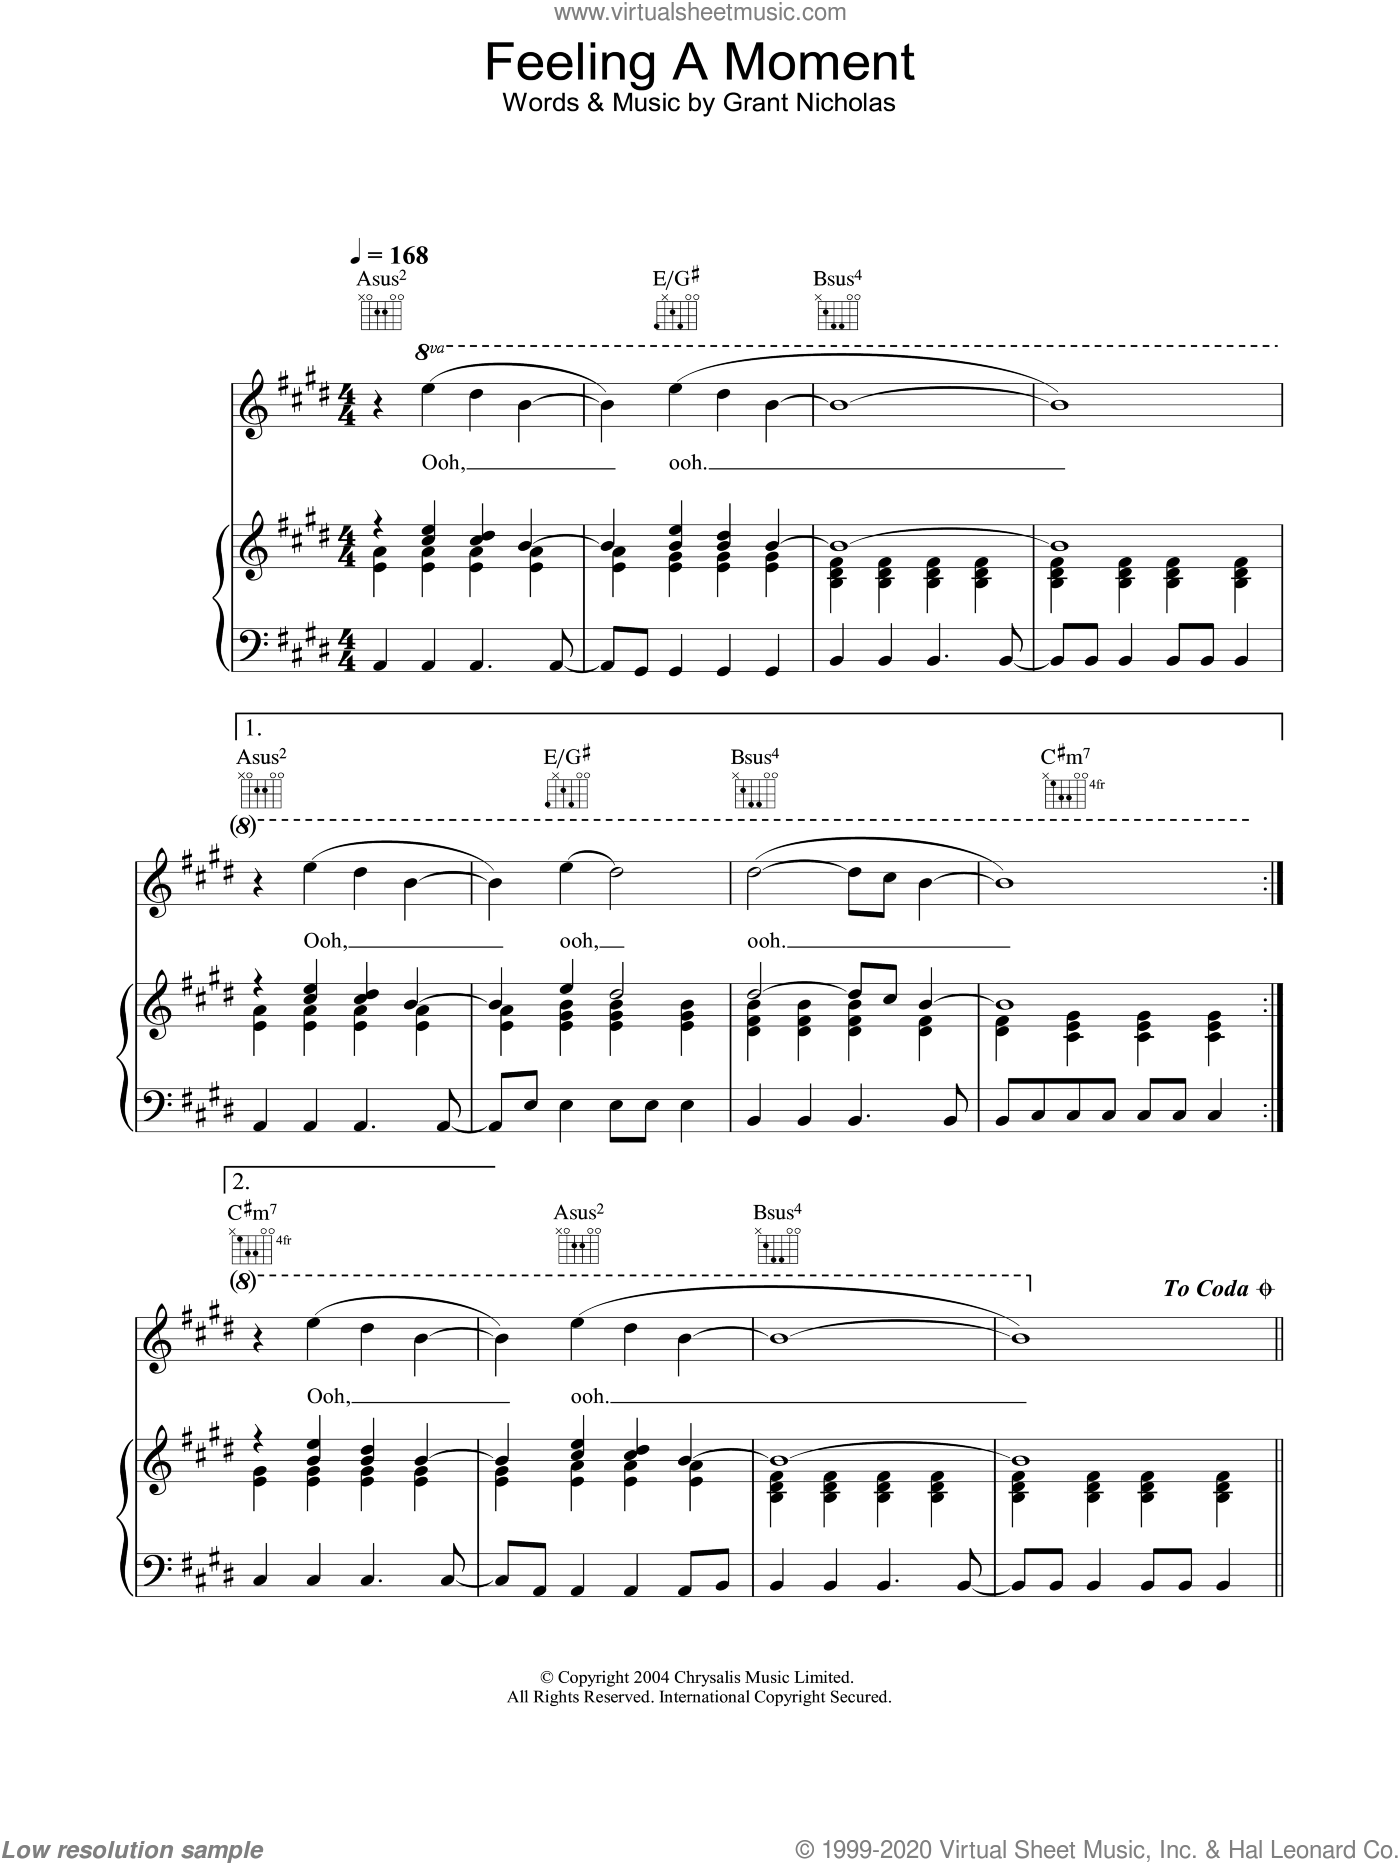 Feeling A Moment sheet music for voice, piano or guitar by Grant Nicholas